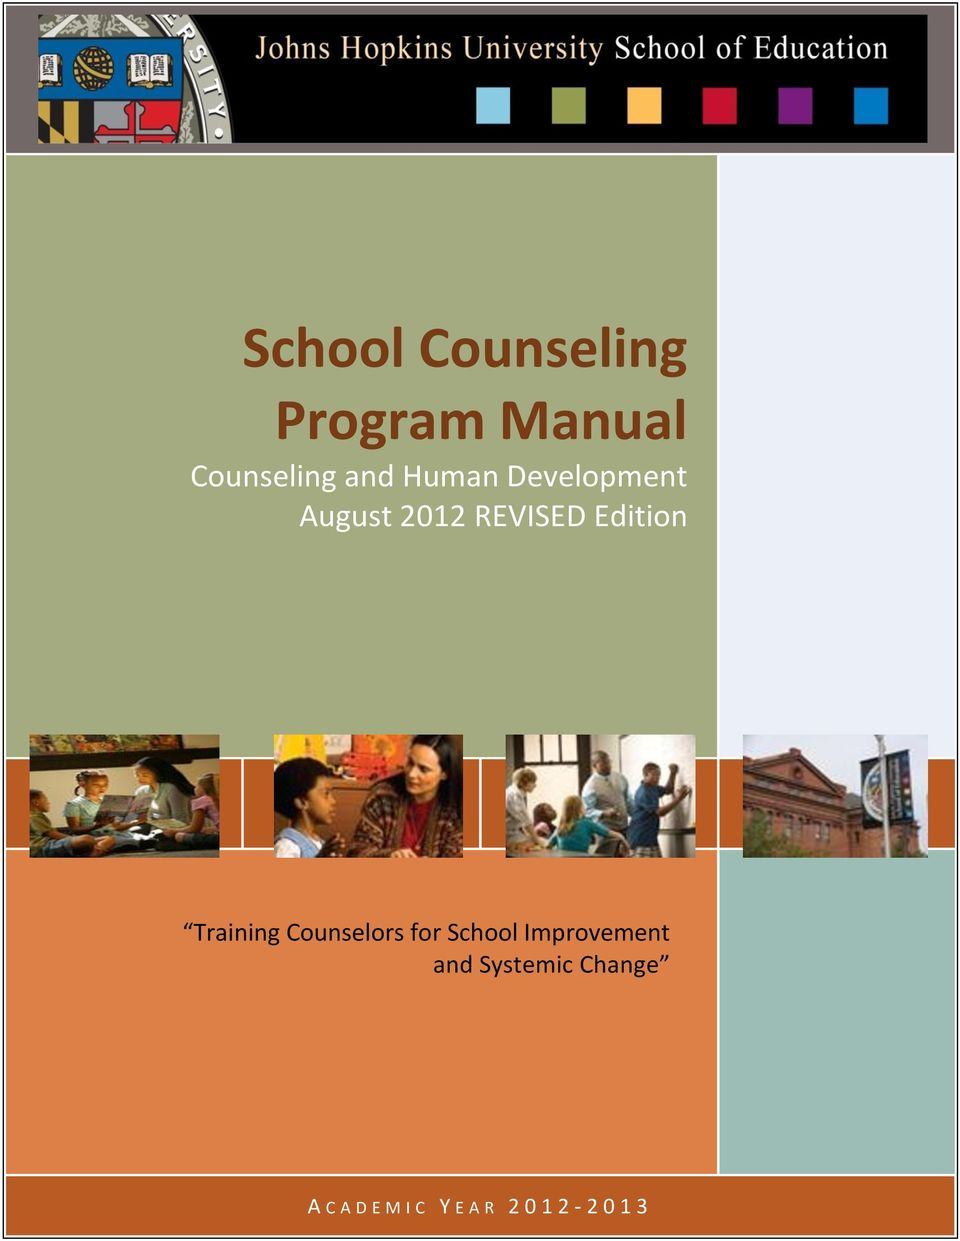 Training Counselors for School Improvement and